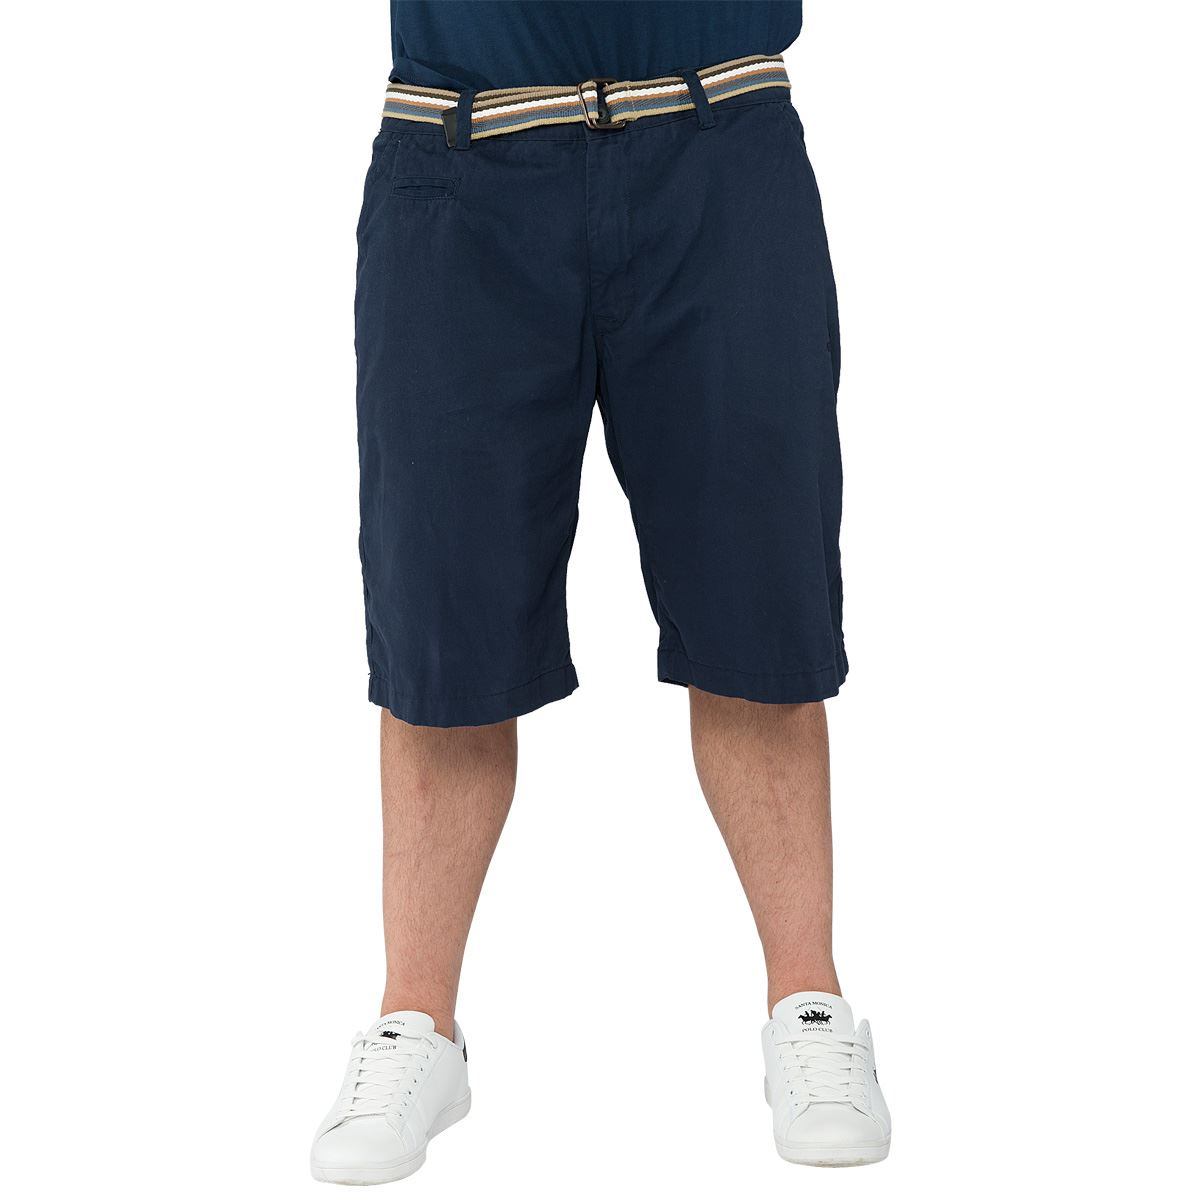 Finding clothes for short men is hard because most brands don't fit well. Here's a list of brands that make clothing for short men. Best Places to Buy Clothes for Short Men (Complete List) Published on June 13, Also in general, Asian brands carry decent looking clothes in smaller sizes so that's worth googling. Reply. Joey DeCarlo.